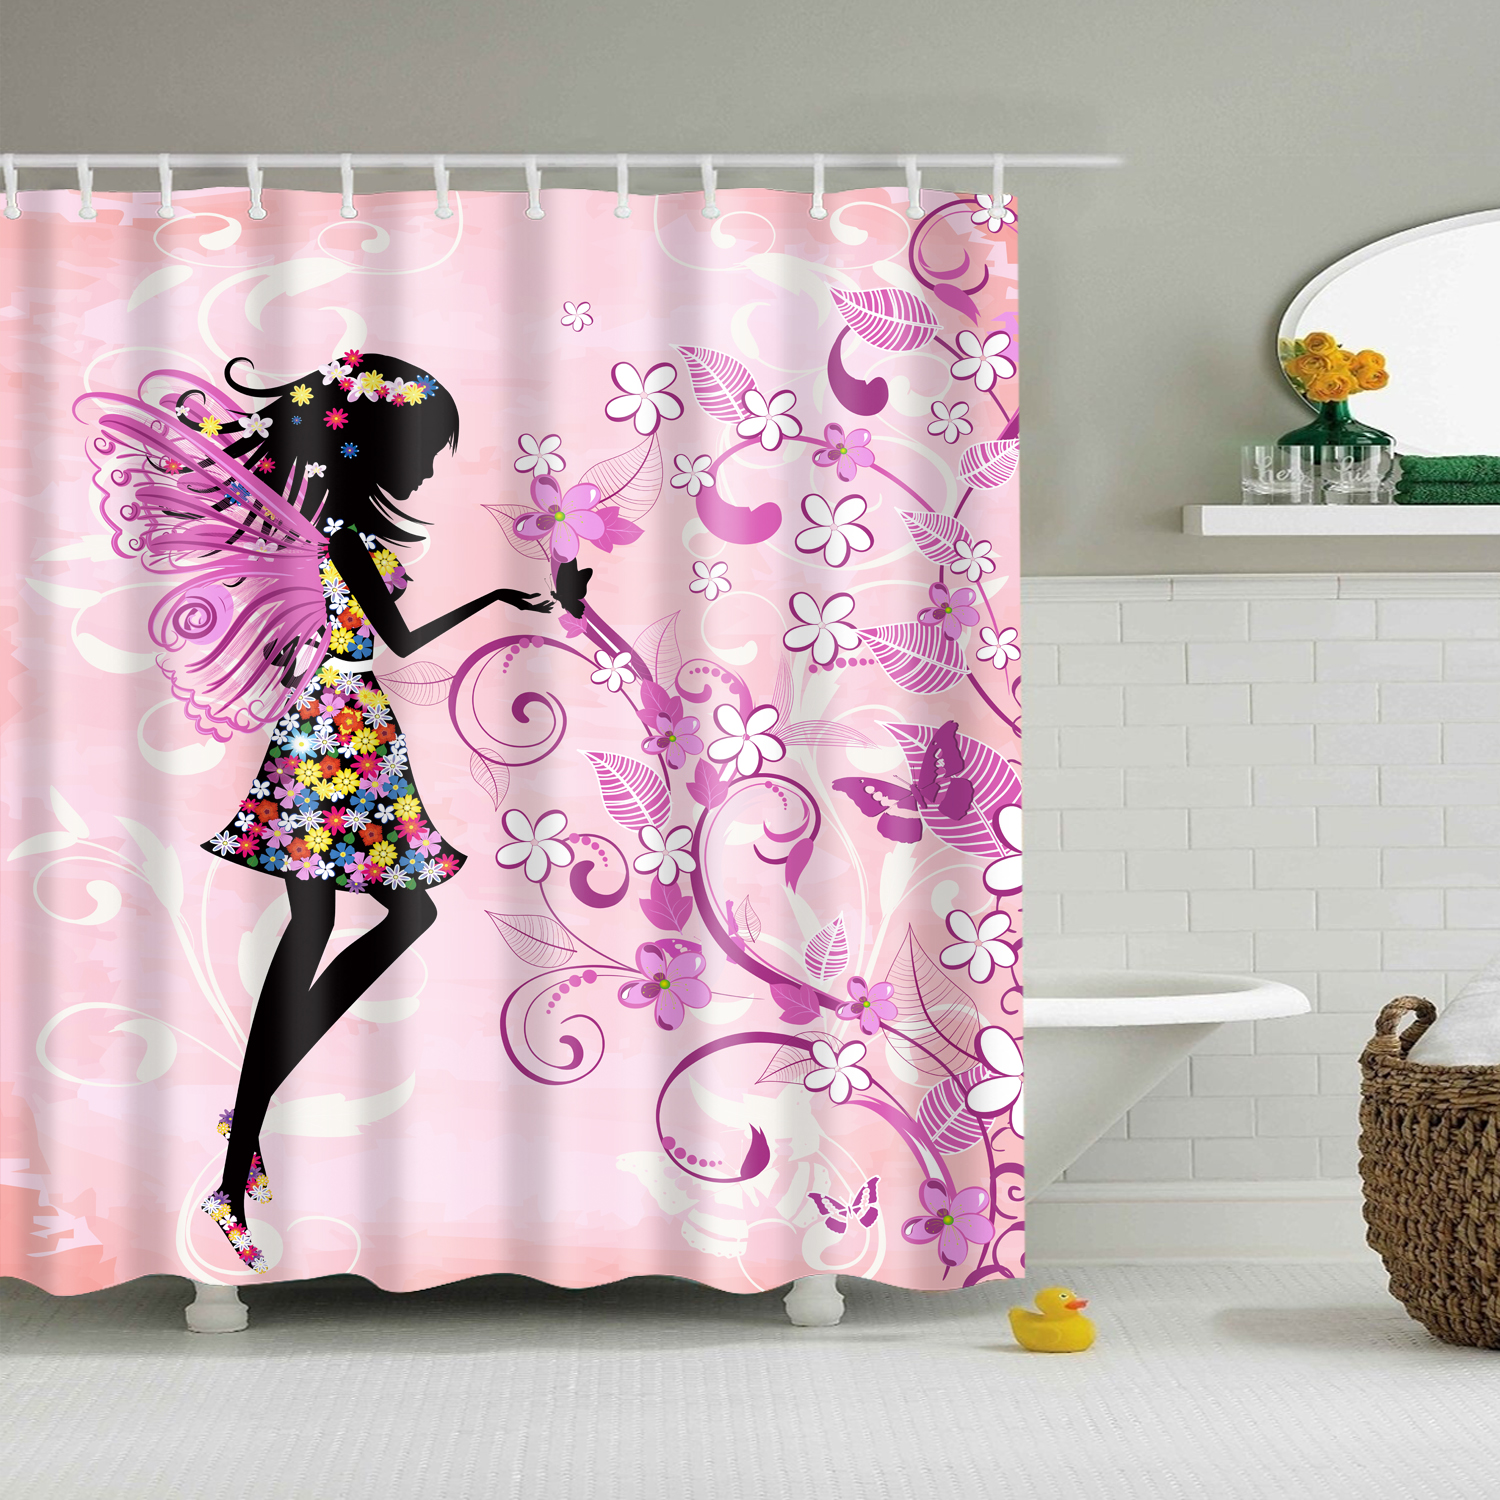 Bathtub Bathroom Shower Curtain Fabric Liner With 12 Hooks Waterproof Mildewproof